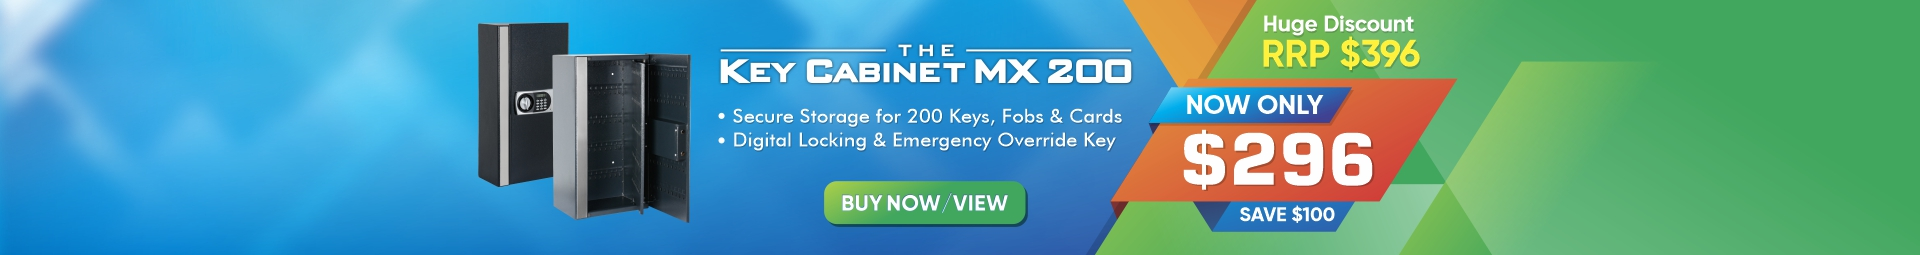 Key Cabinet MX 200 Sale - Save $100